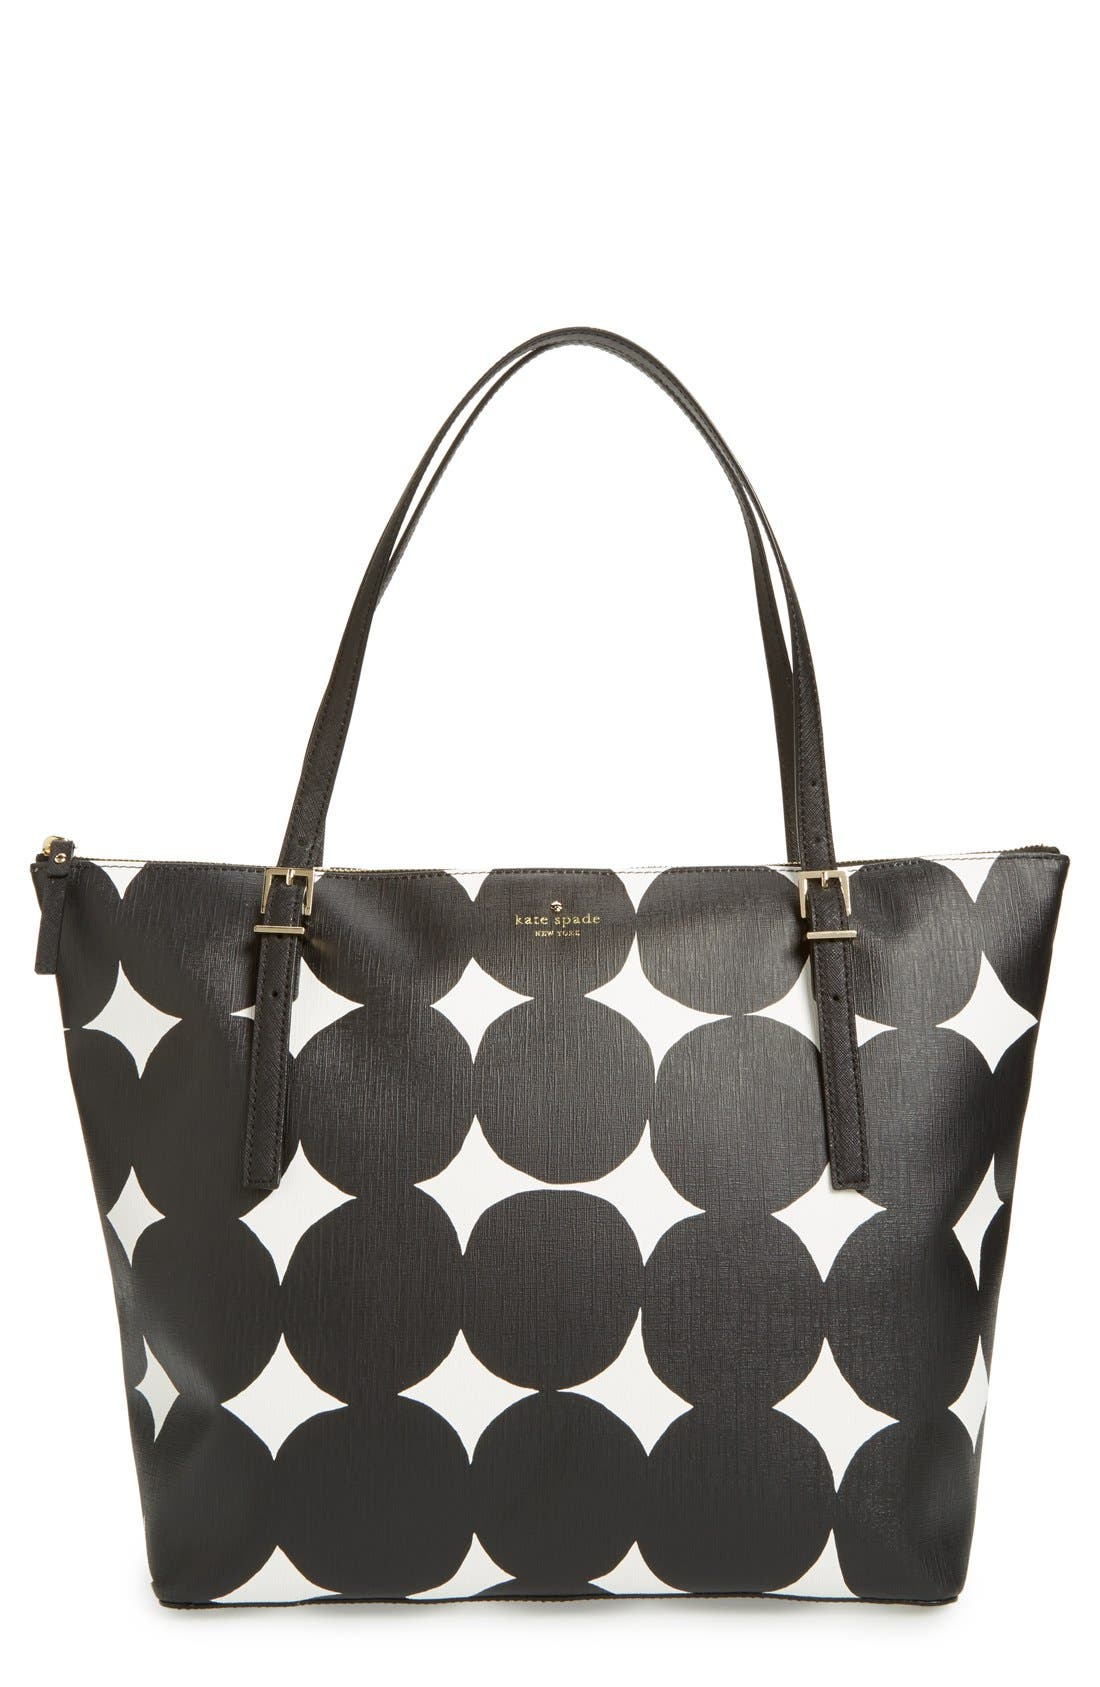 Alternate Image 1 Selected - kate spade new york 'emma lane - maya' tote